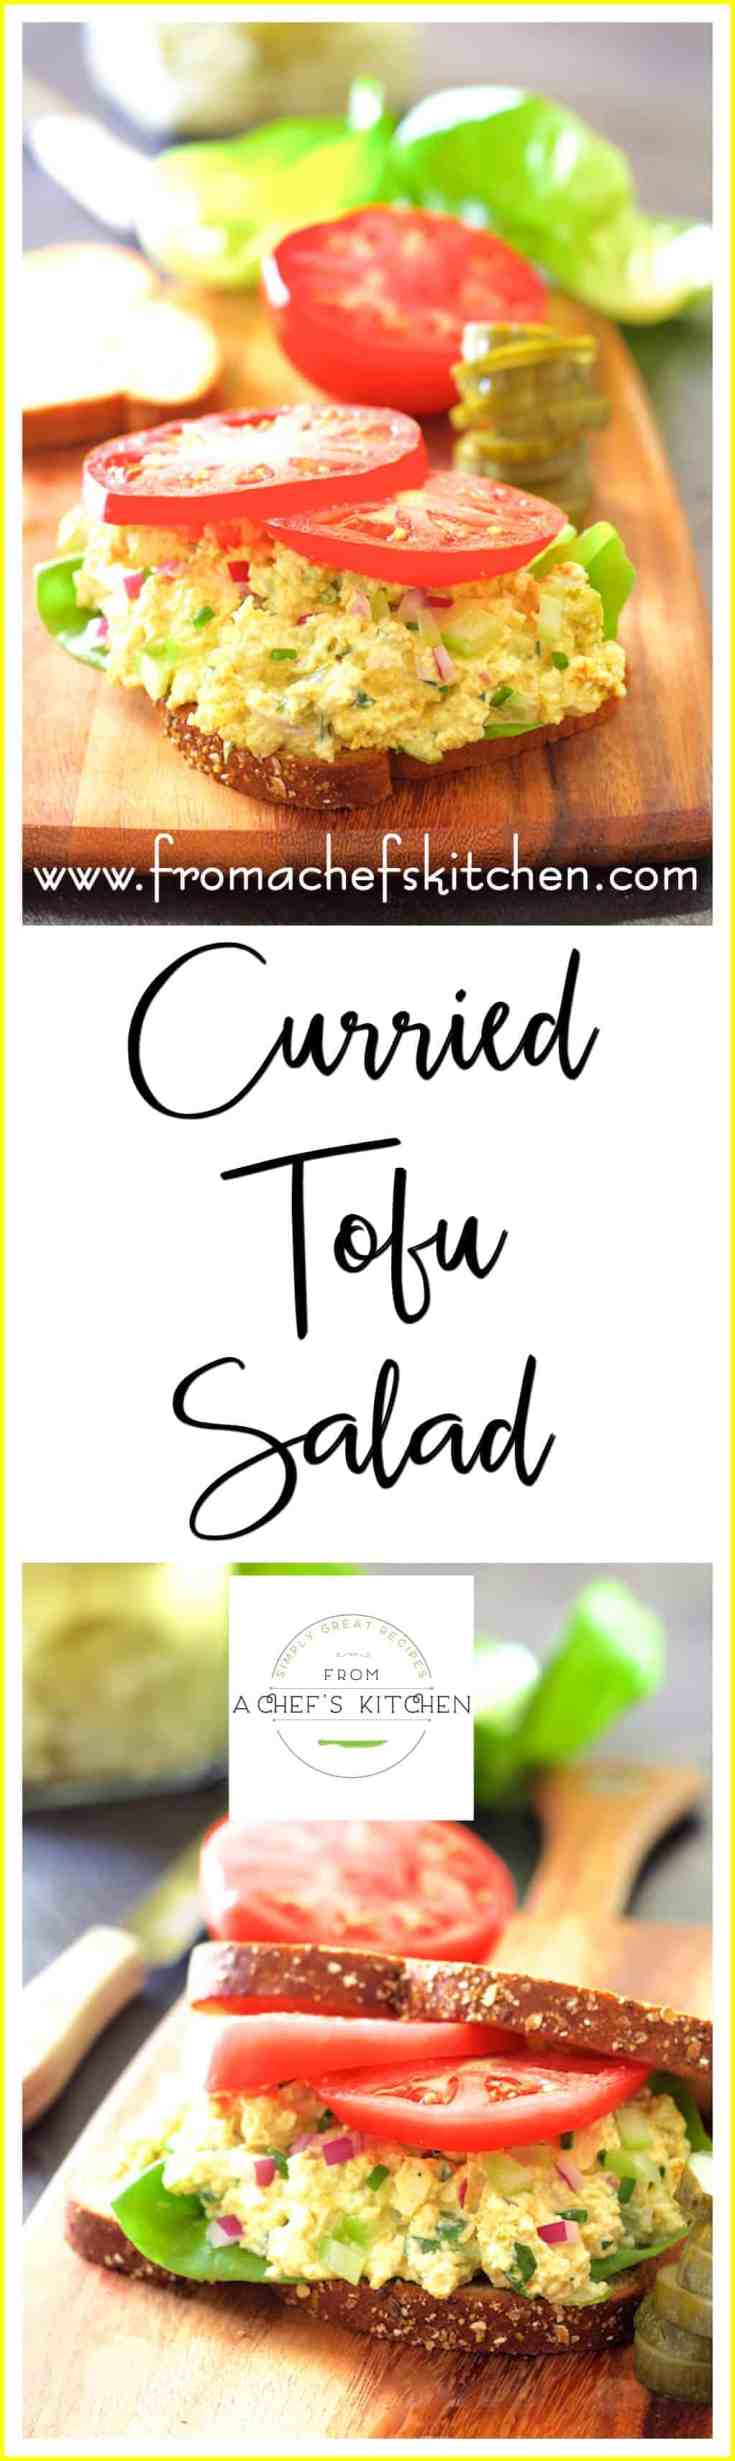 Curried Tofu Salad will change your mind about tofu!  It's the perfect flavorful, protein-packed alternative to egg salad.  Curried Tofu Salad is perfect to pile onto whole-grain bread for a delicious sandwich or stuff into a tomato or avocado for something a little more elegant.  #tofu #tofusalad #vegetarian #curry #Indianfood